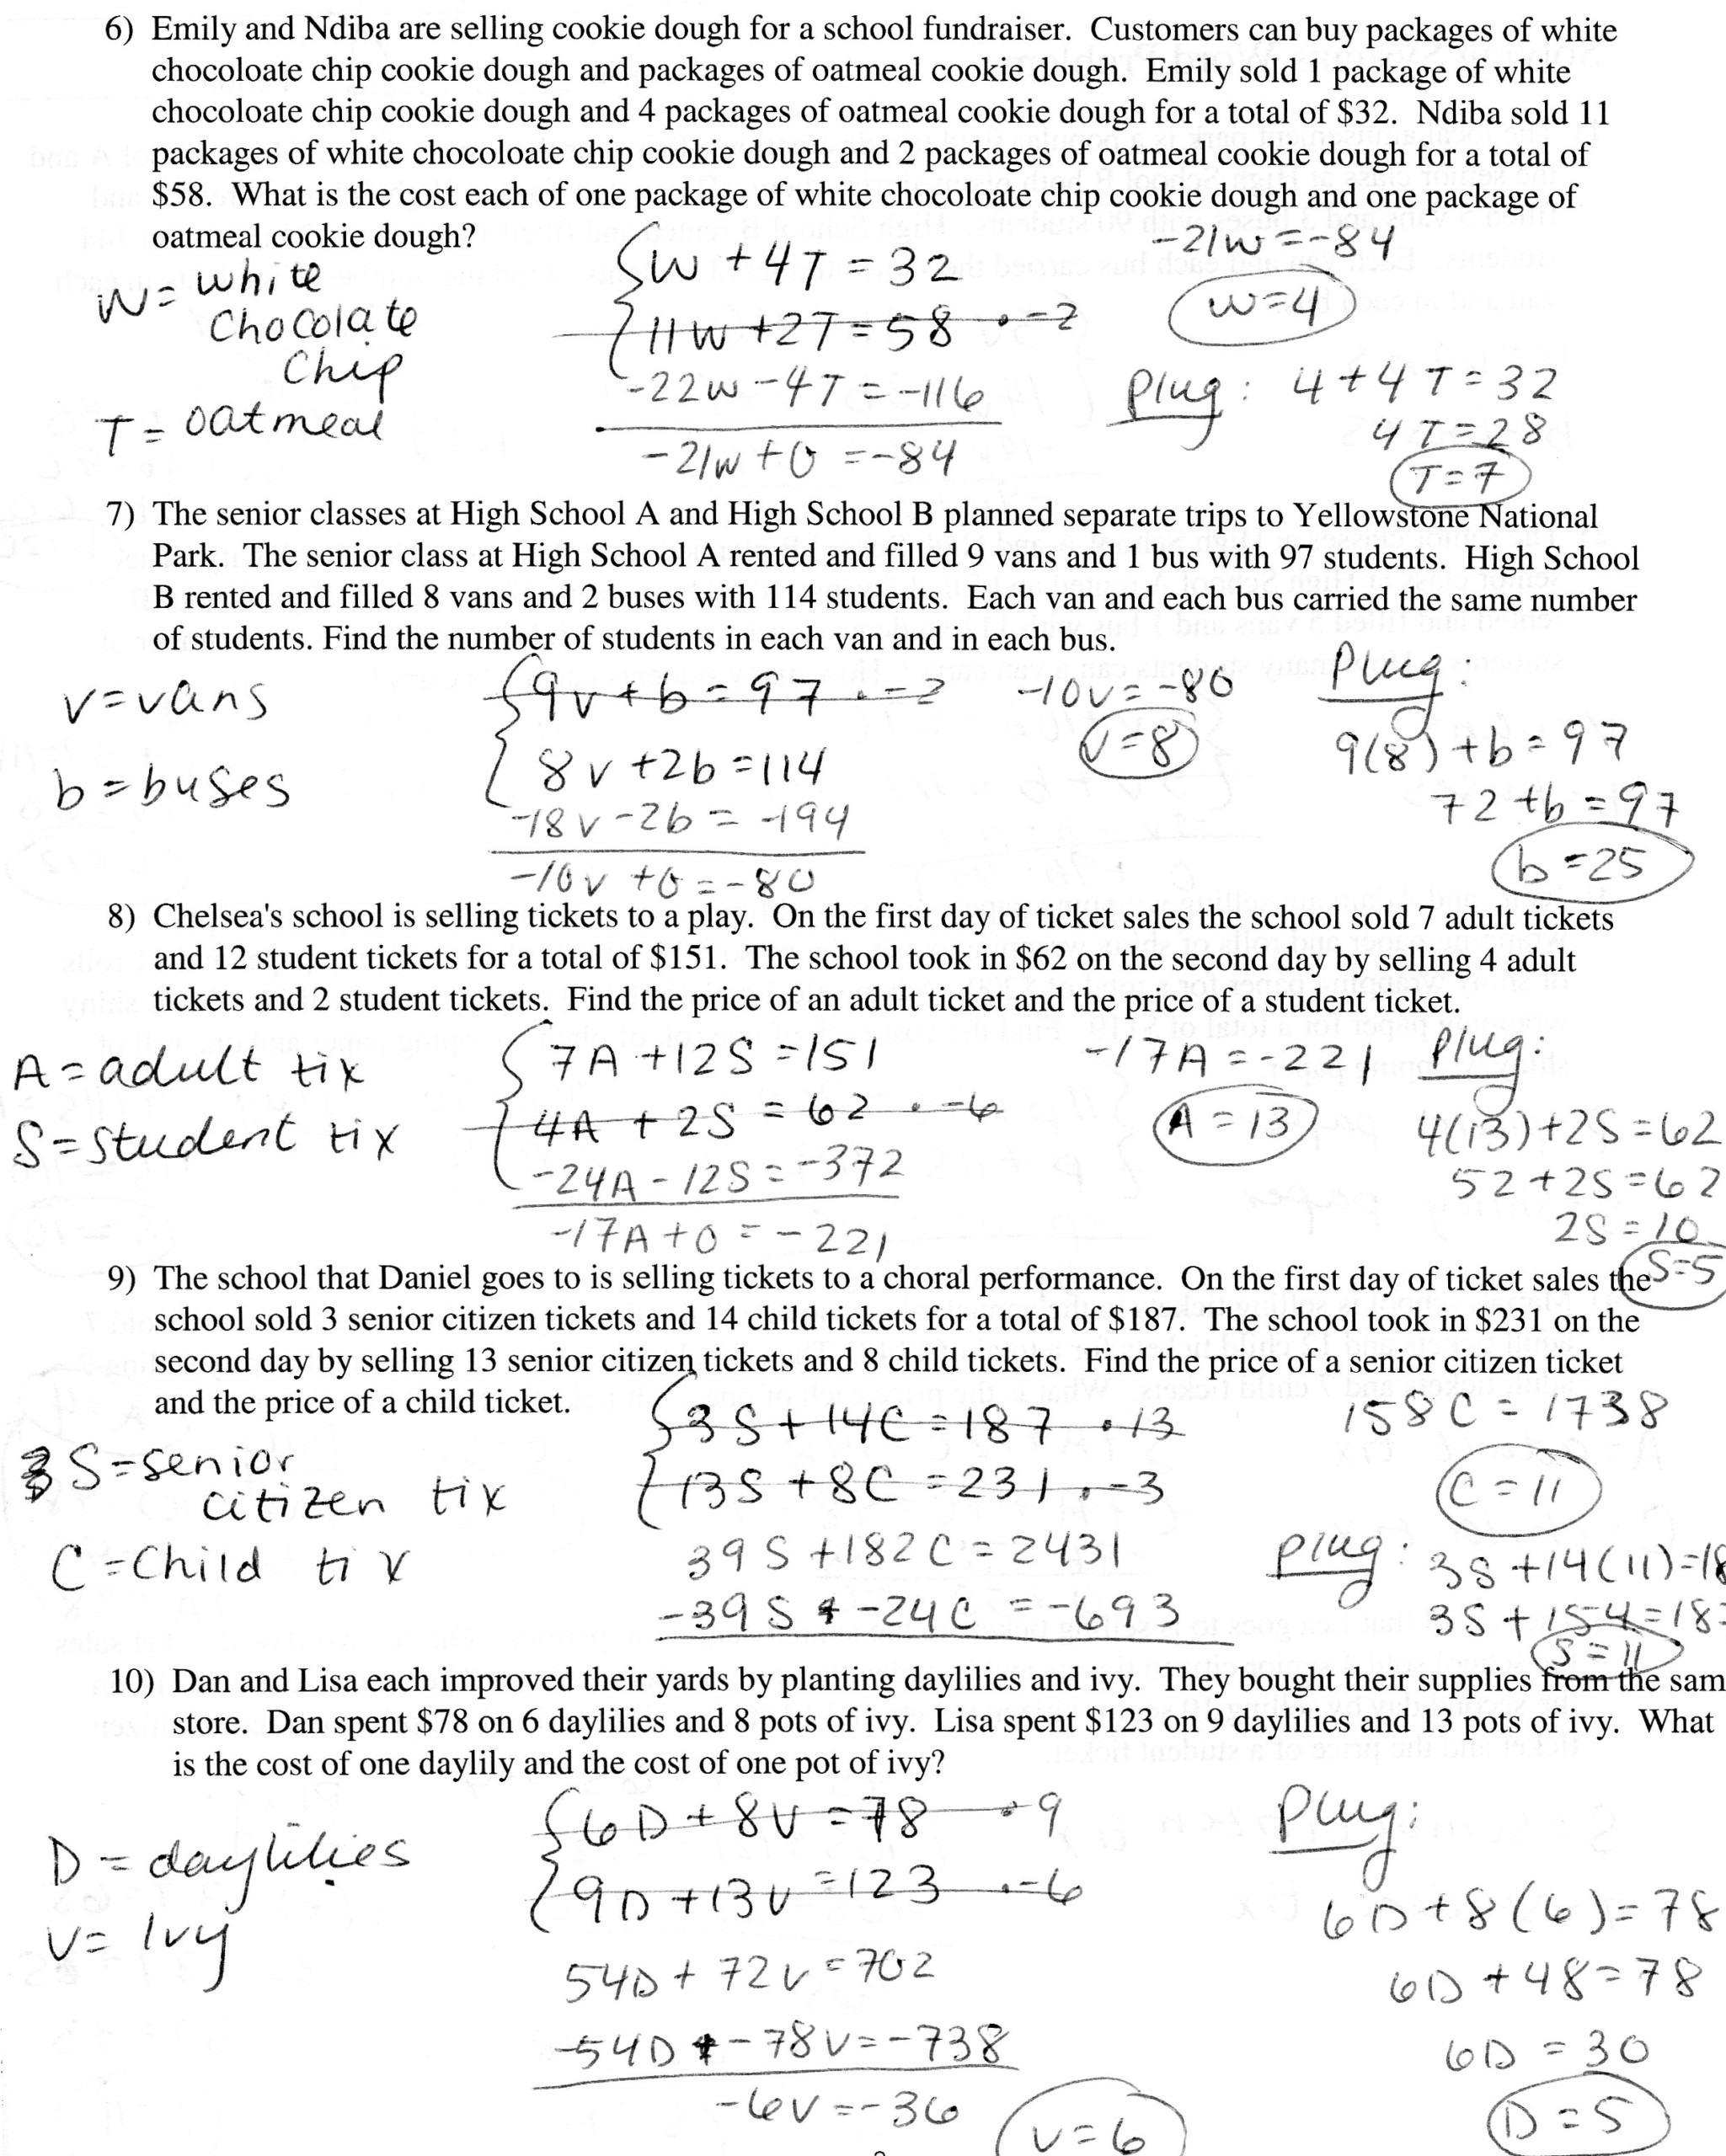 Writing Linear Equations From Word Problems Worksheet Pdf